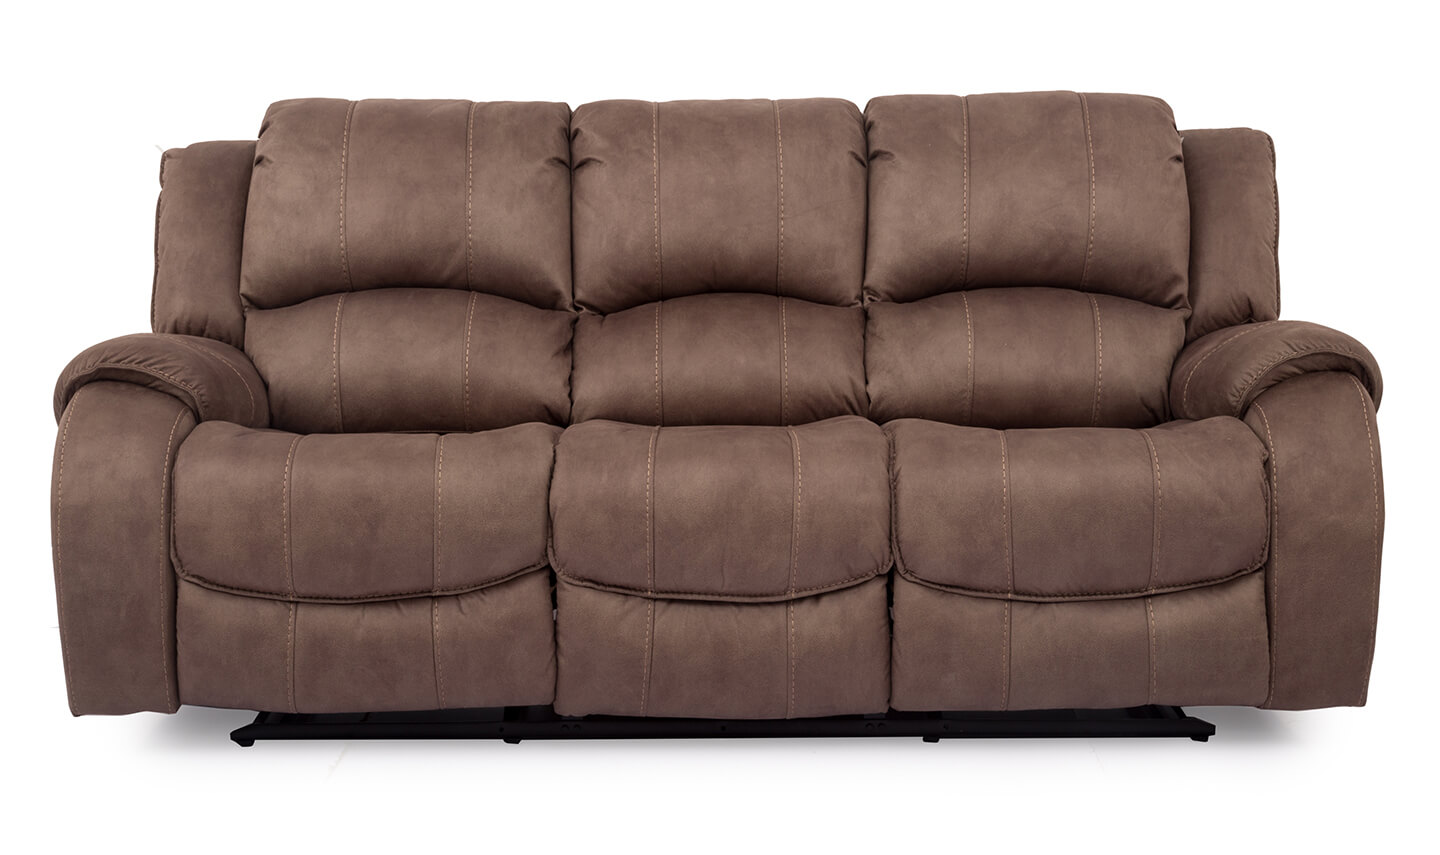 Darwin 3 Seater Recliner Biscuit